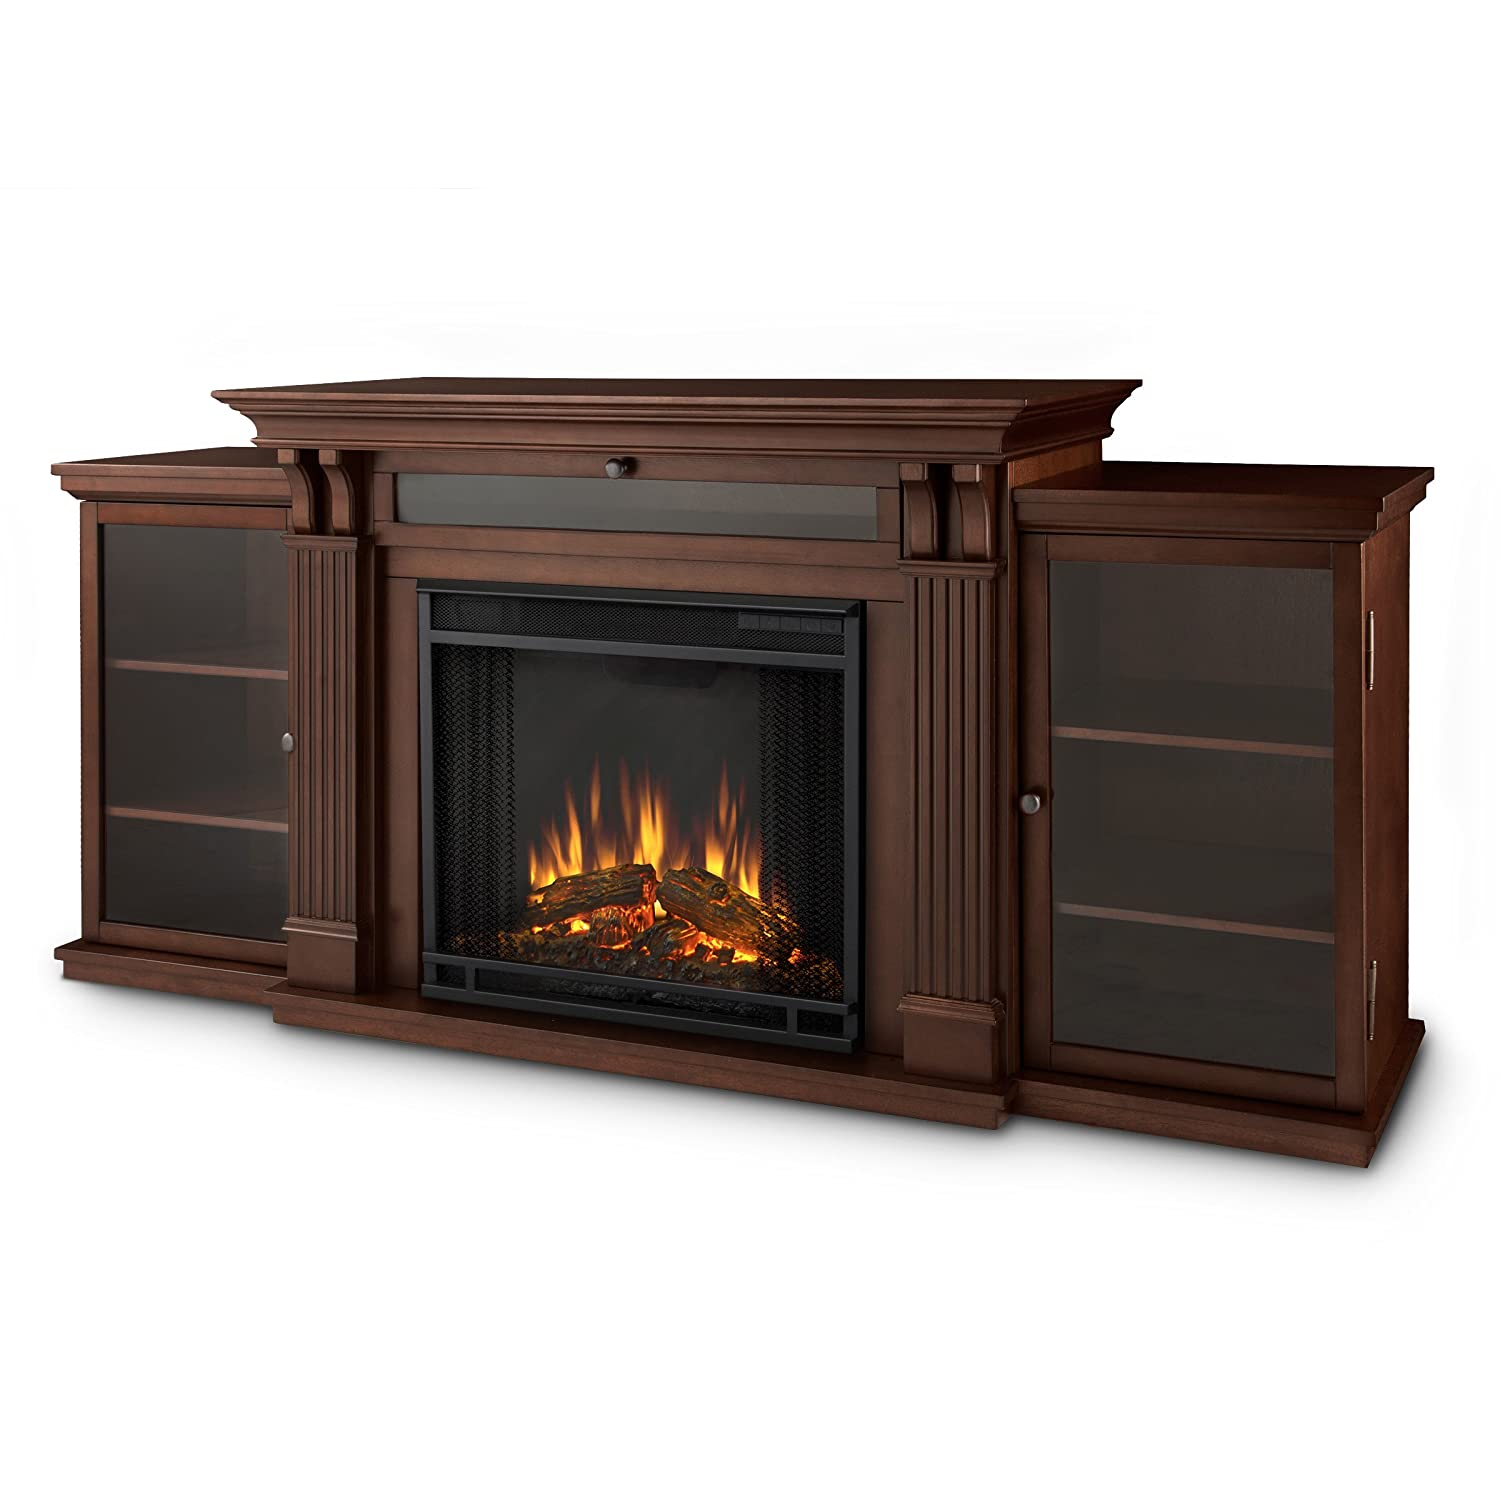 Calie Entertainment Electric Fireplace, Large, Dark Espresso